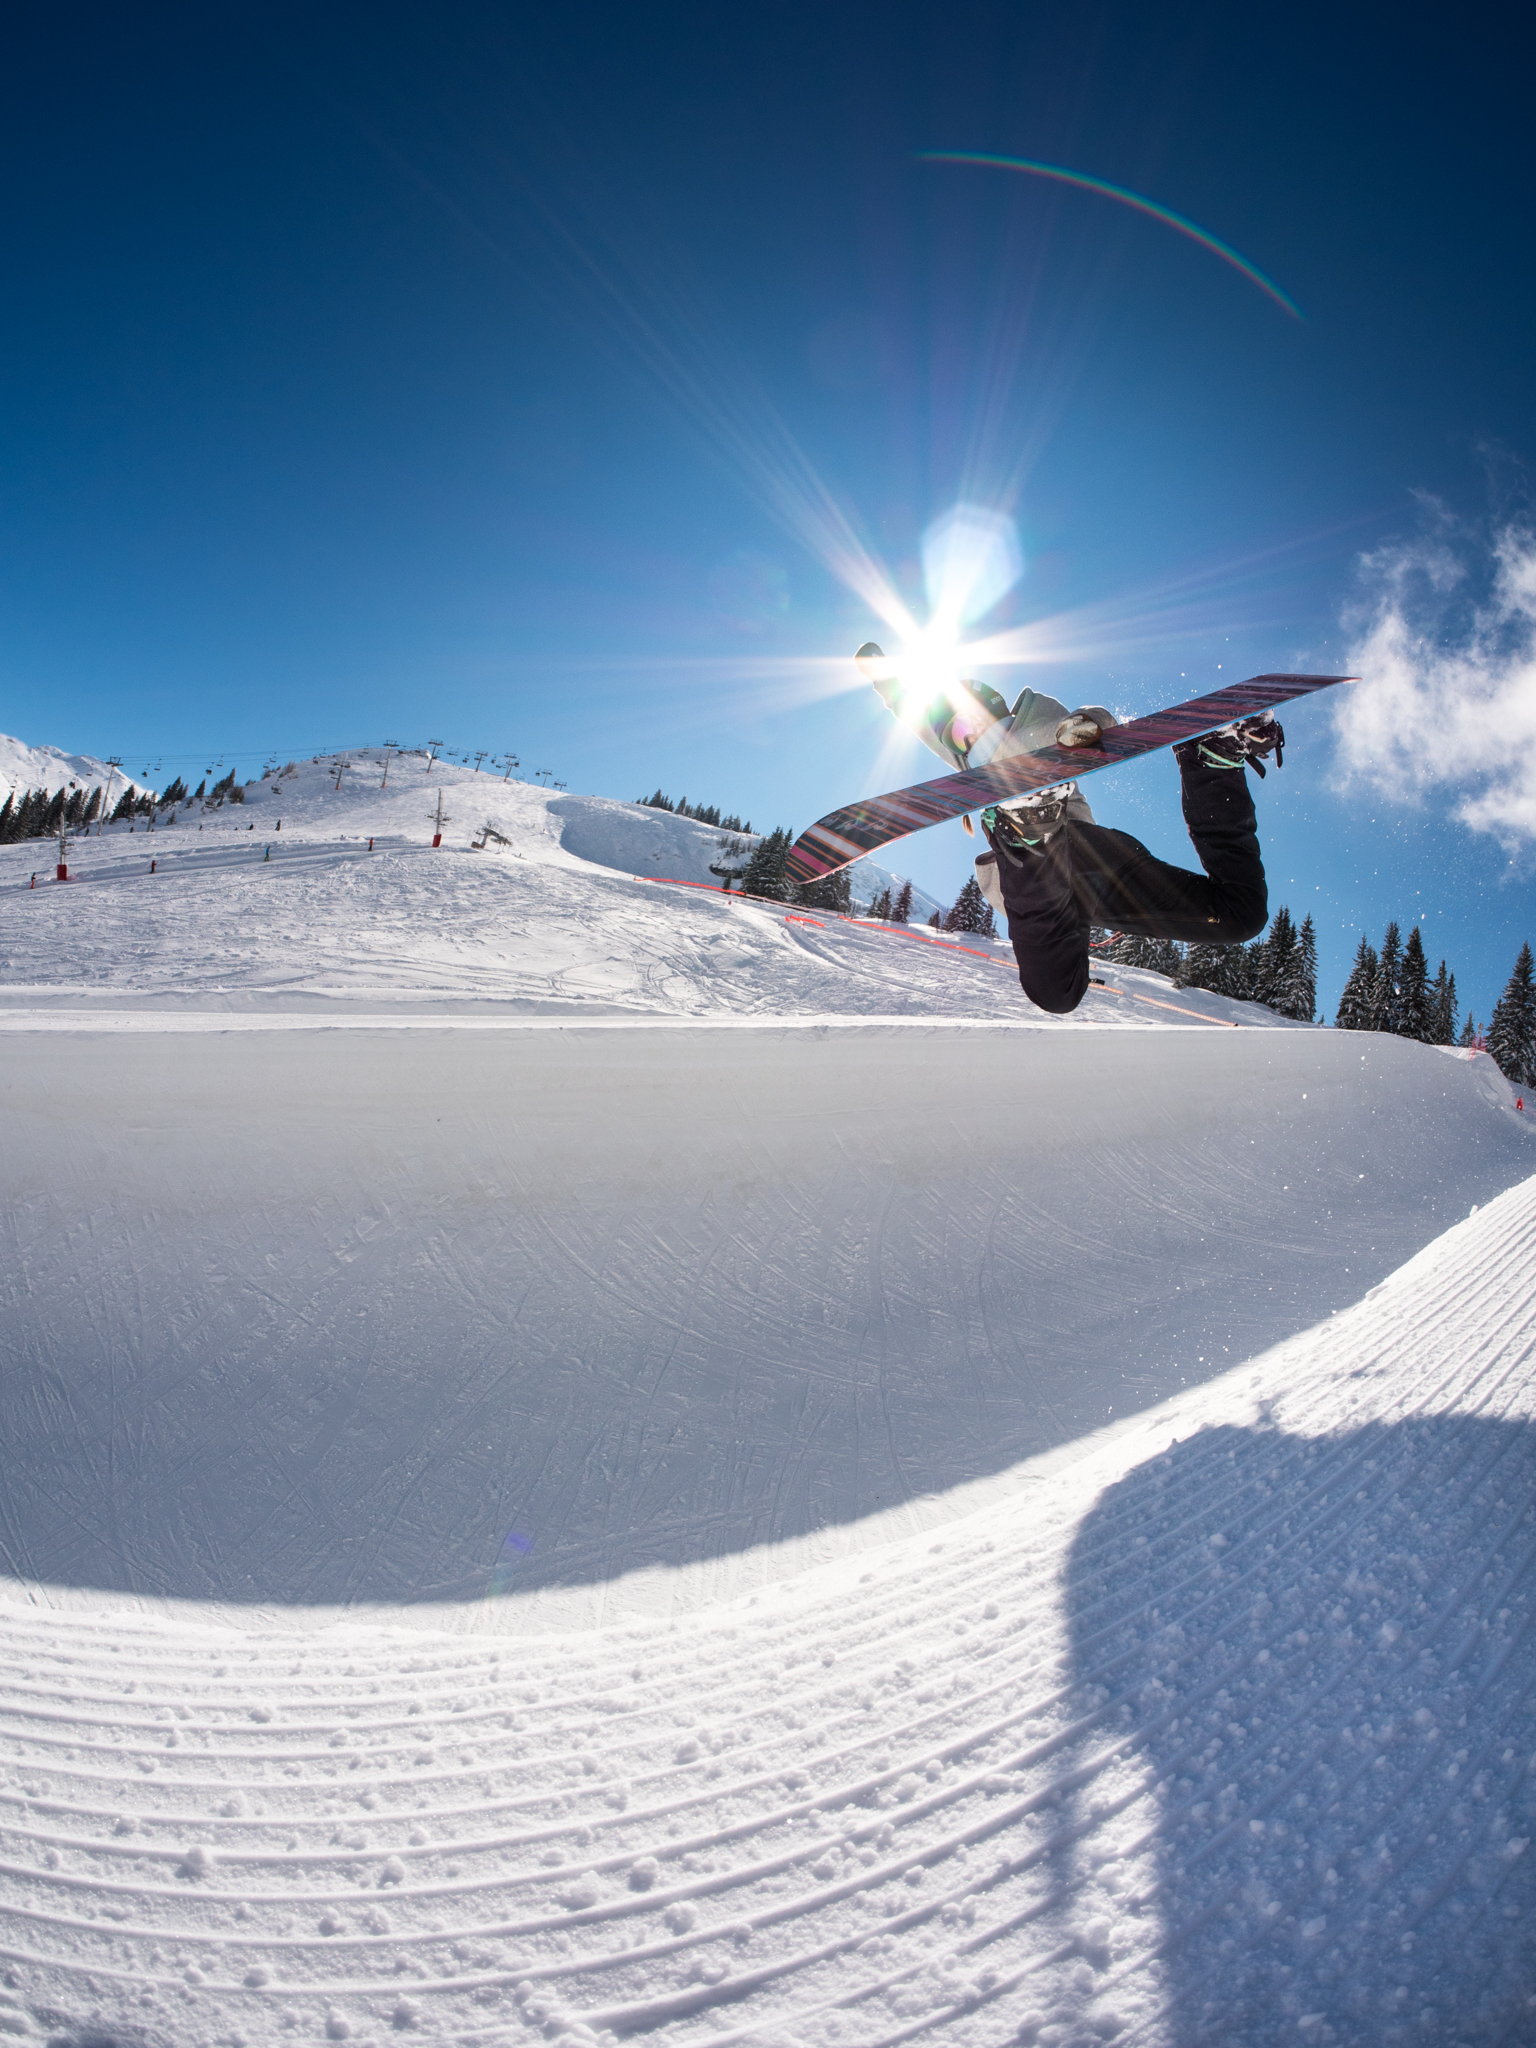 Backside air in Avoriaz shot by Max Thidling